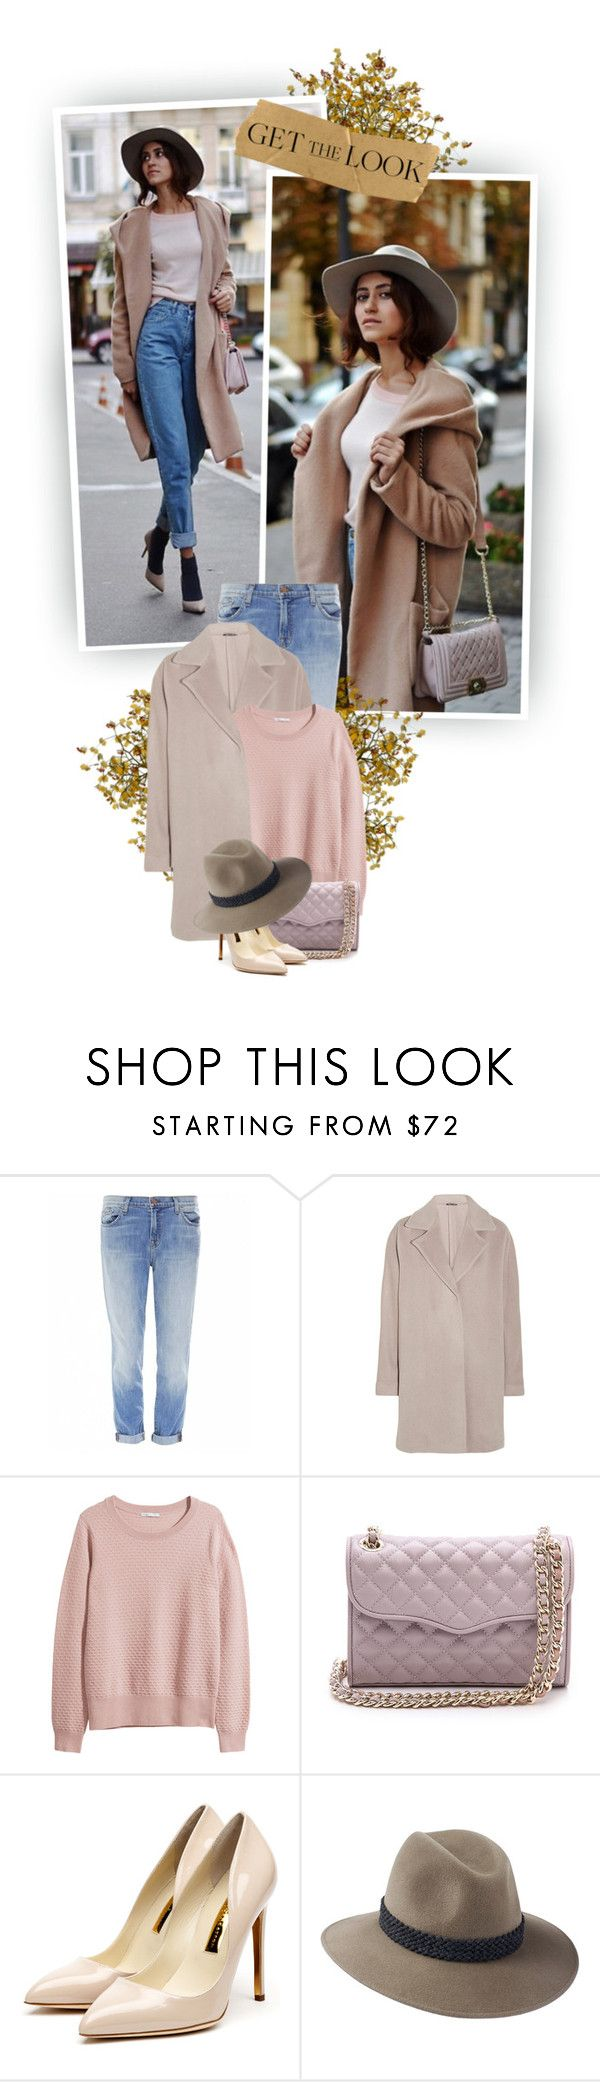 """I Love You When You're Singing That Song, And I've Got A Lump In Throat 'Cause You're Gonna Sing The Words Wrong..."" by hollowpoint-smile ❤ liked on Polyvore featuring American Apparel, J Brand, Maison Margiela, H&M, Rebecca Minkoff, Rupert Sanderson and Penmayne of London"